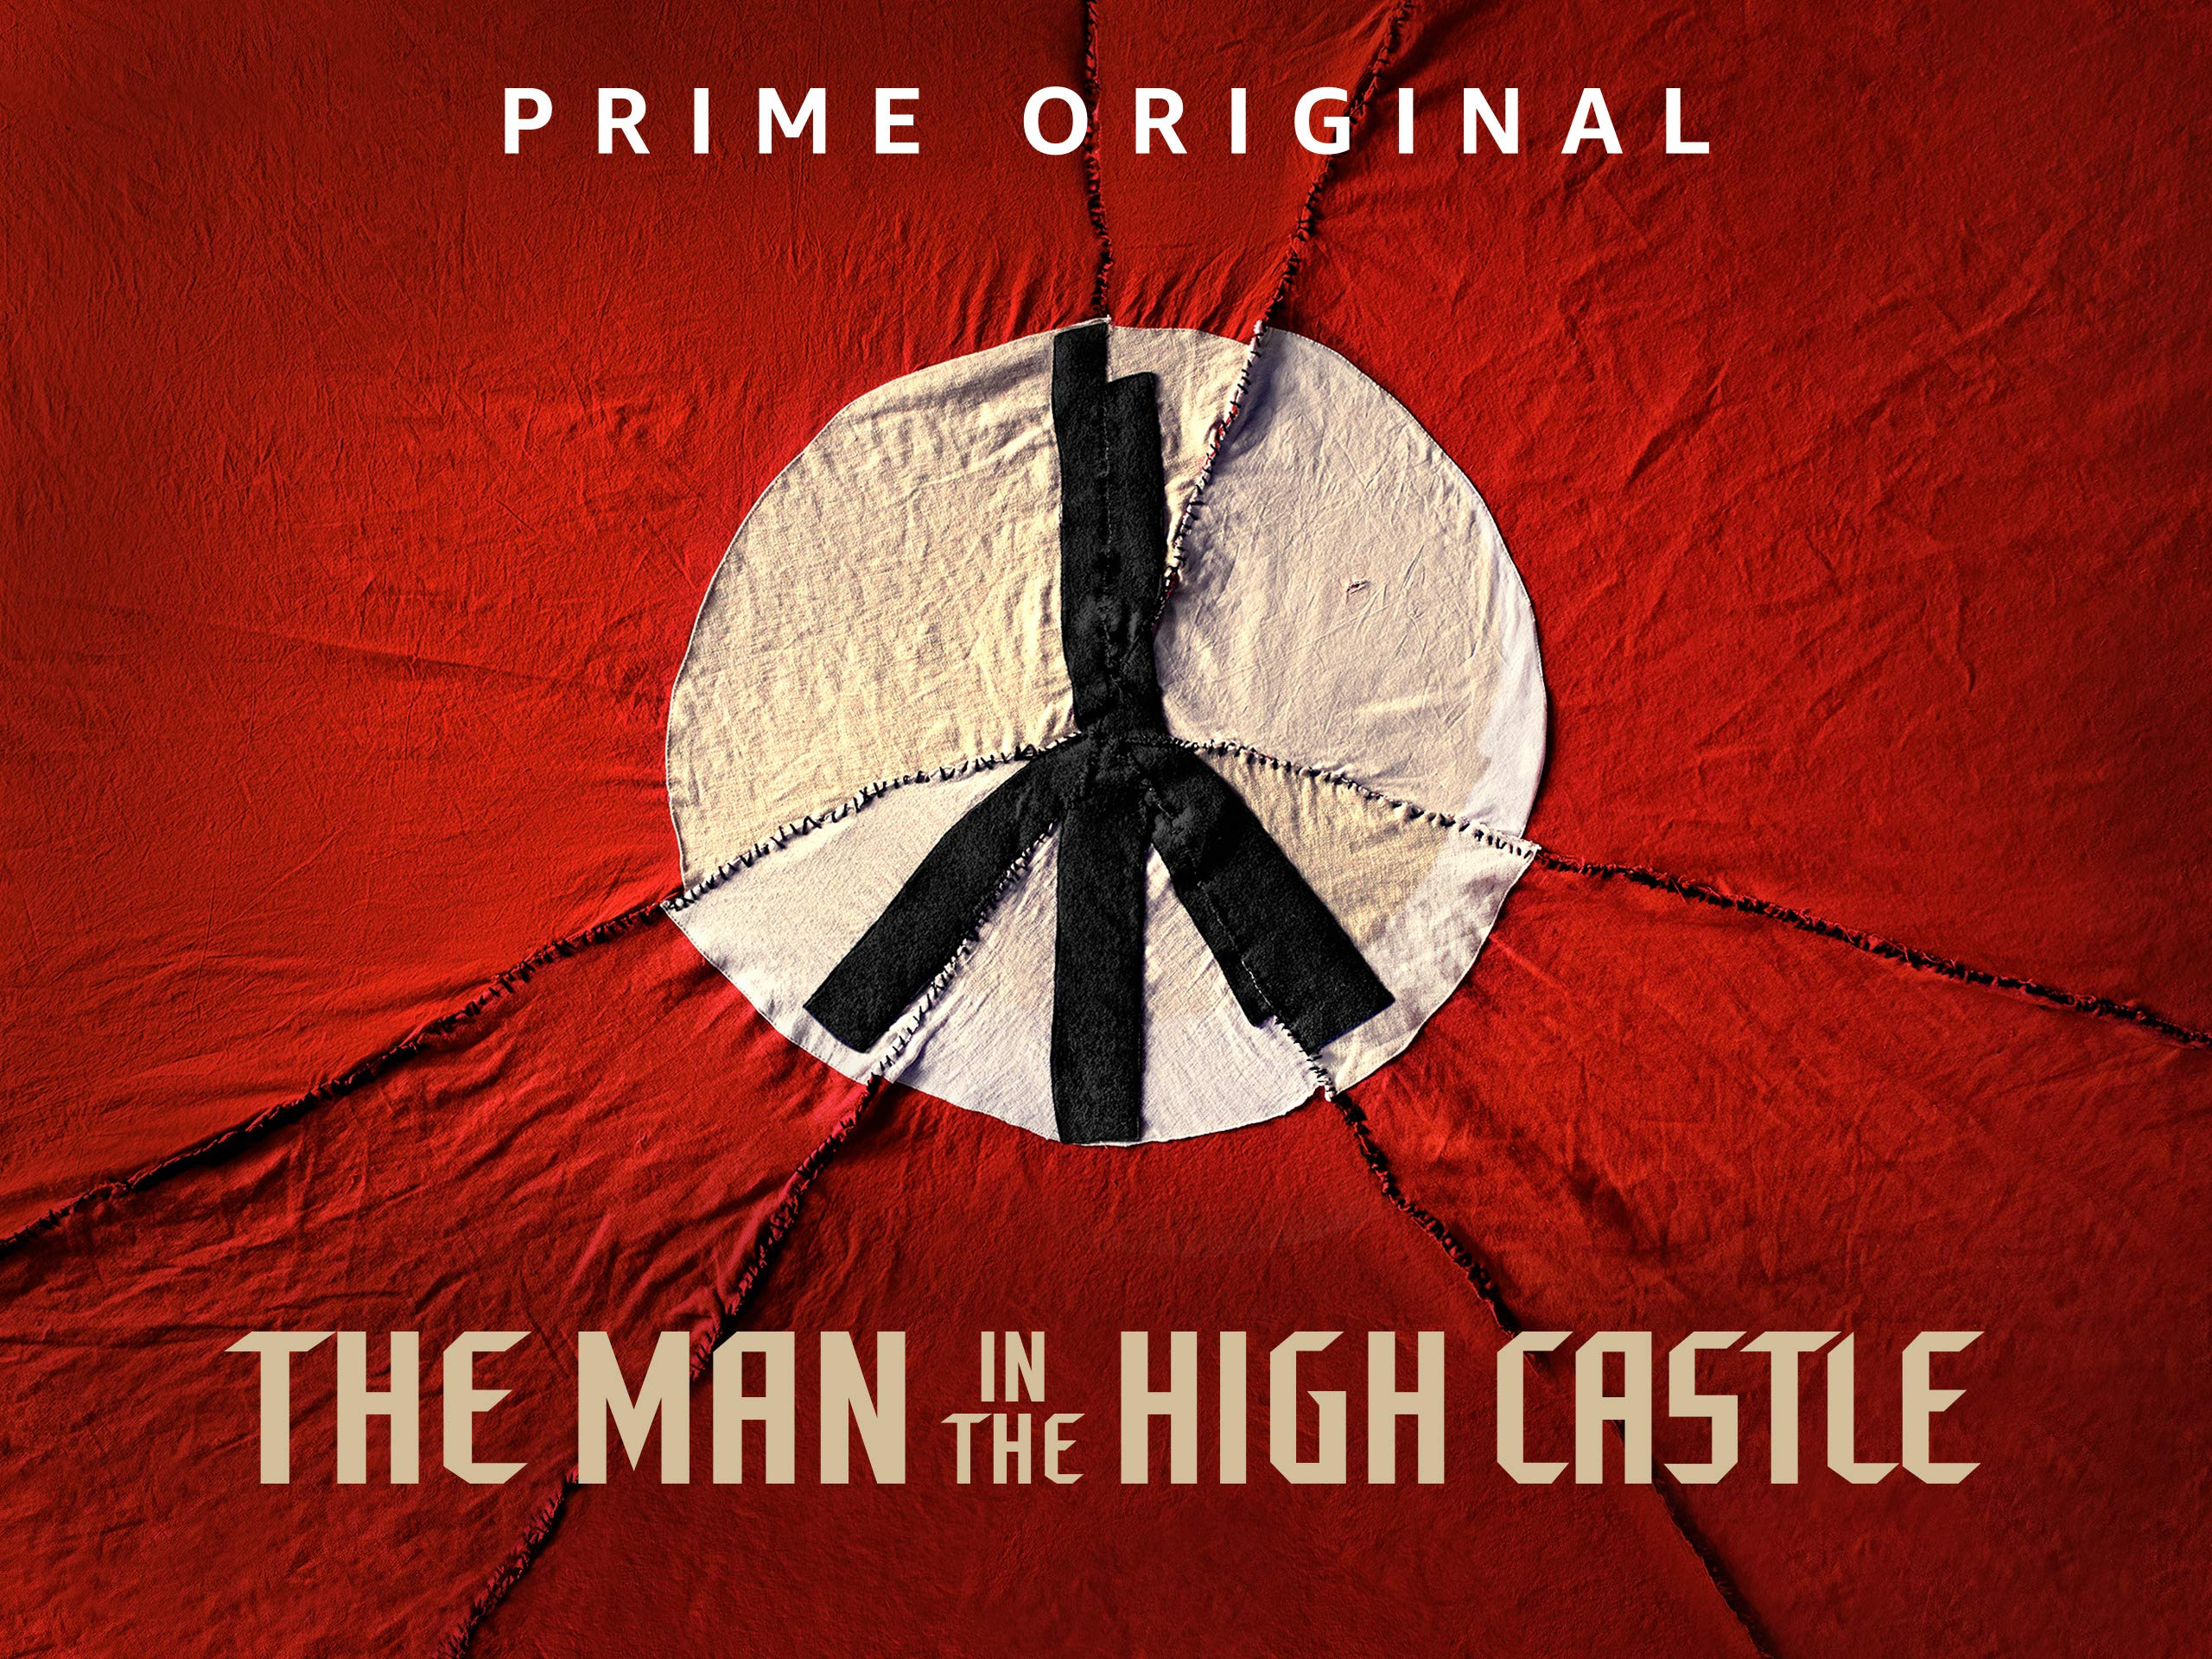 Amazon co uk: Watch The Man In the High Castle - Season 3 | Prime Video